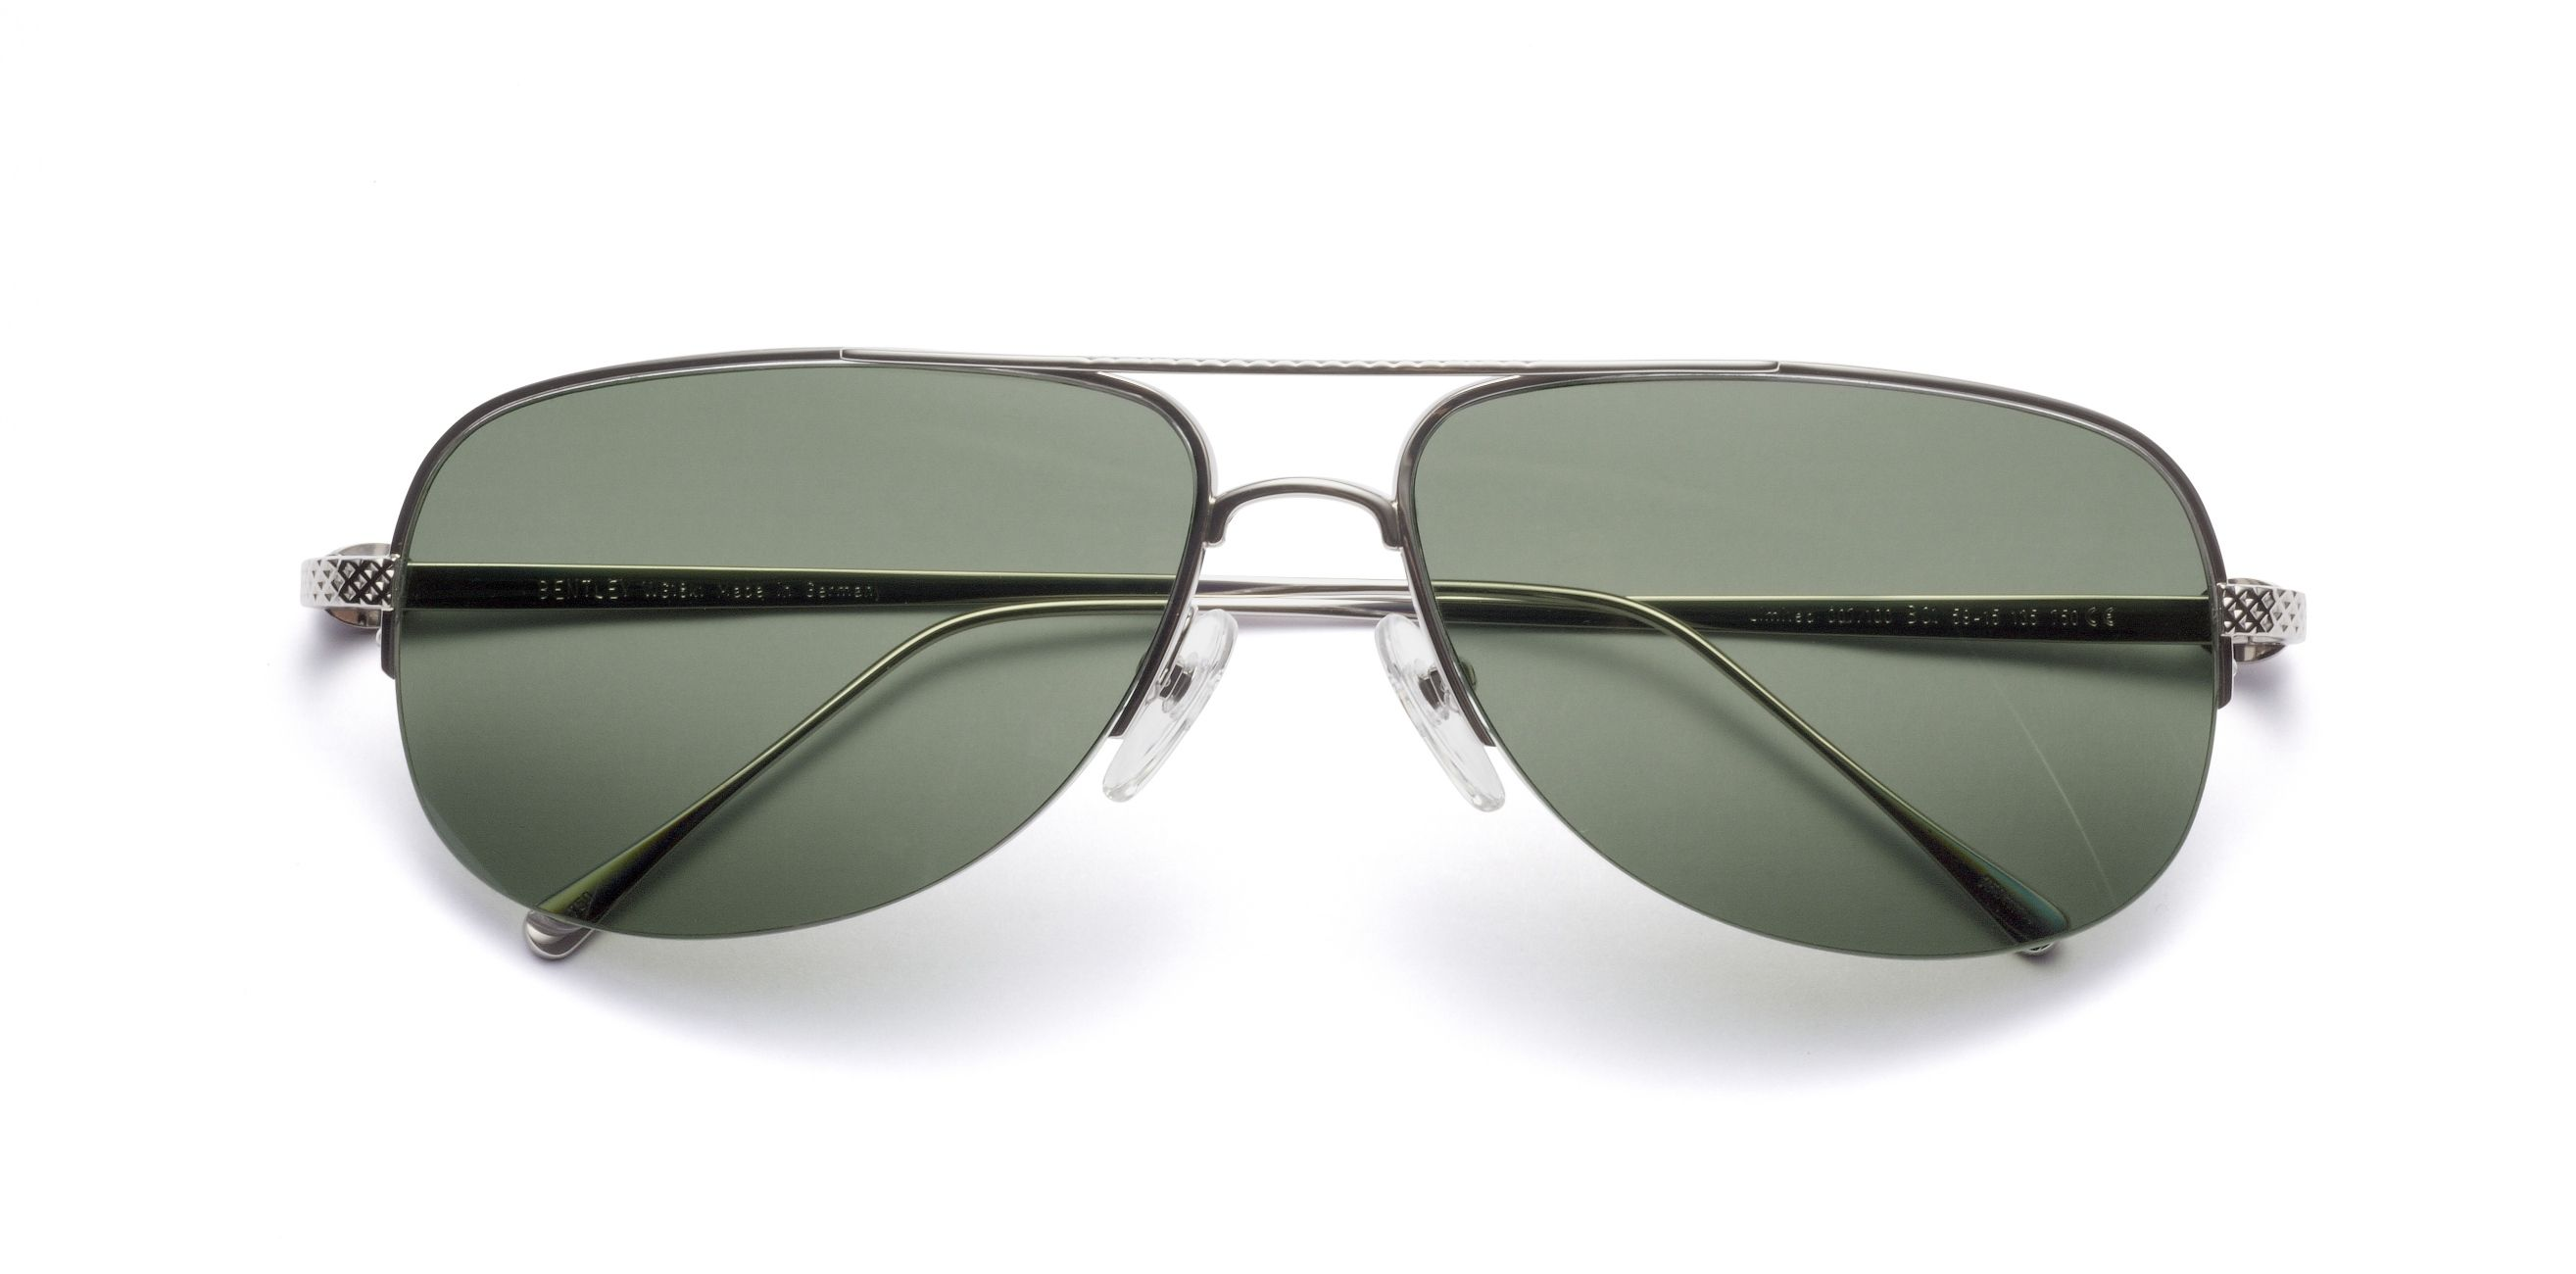 936c7f746050 Bentley Sunglasses for Men These look cool